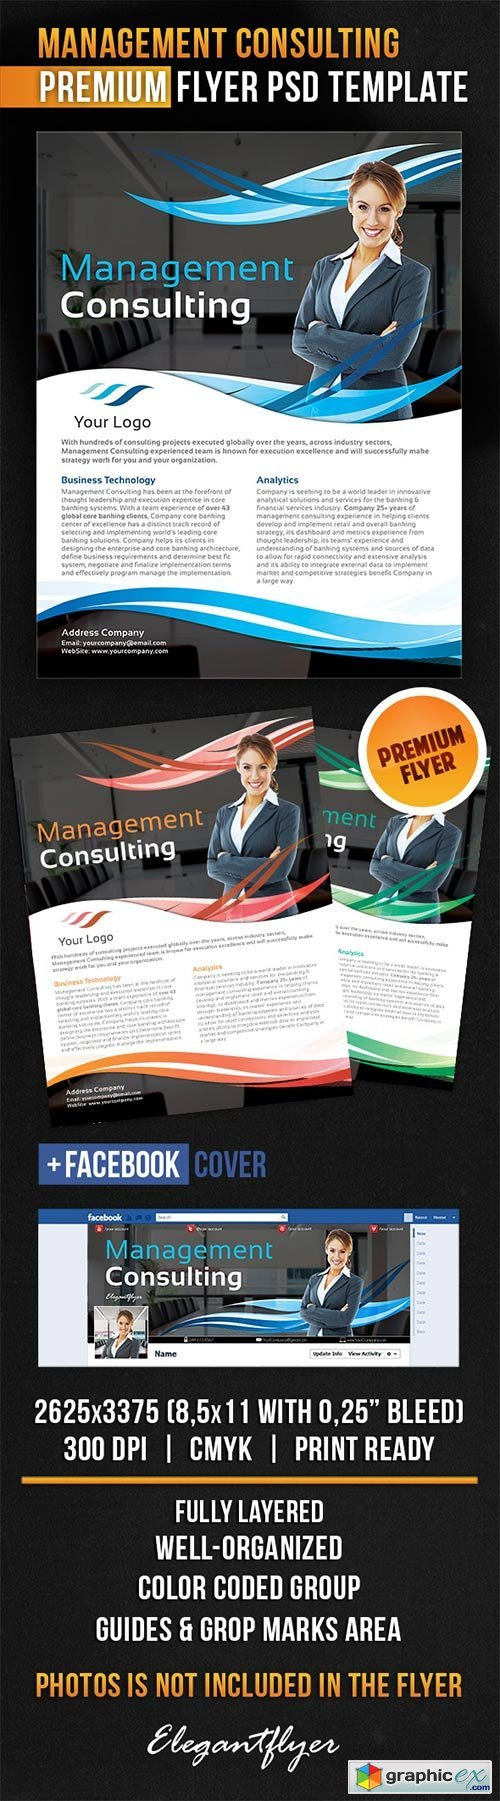 Management Consulting Flyer PSD Template + Facebook Cover